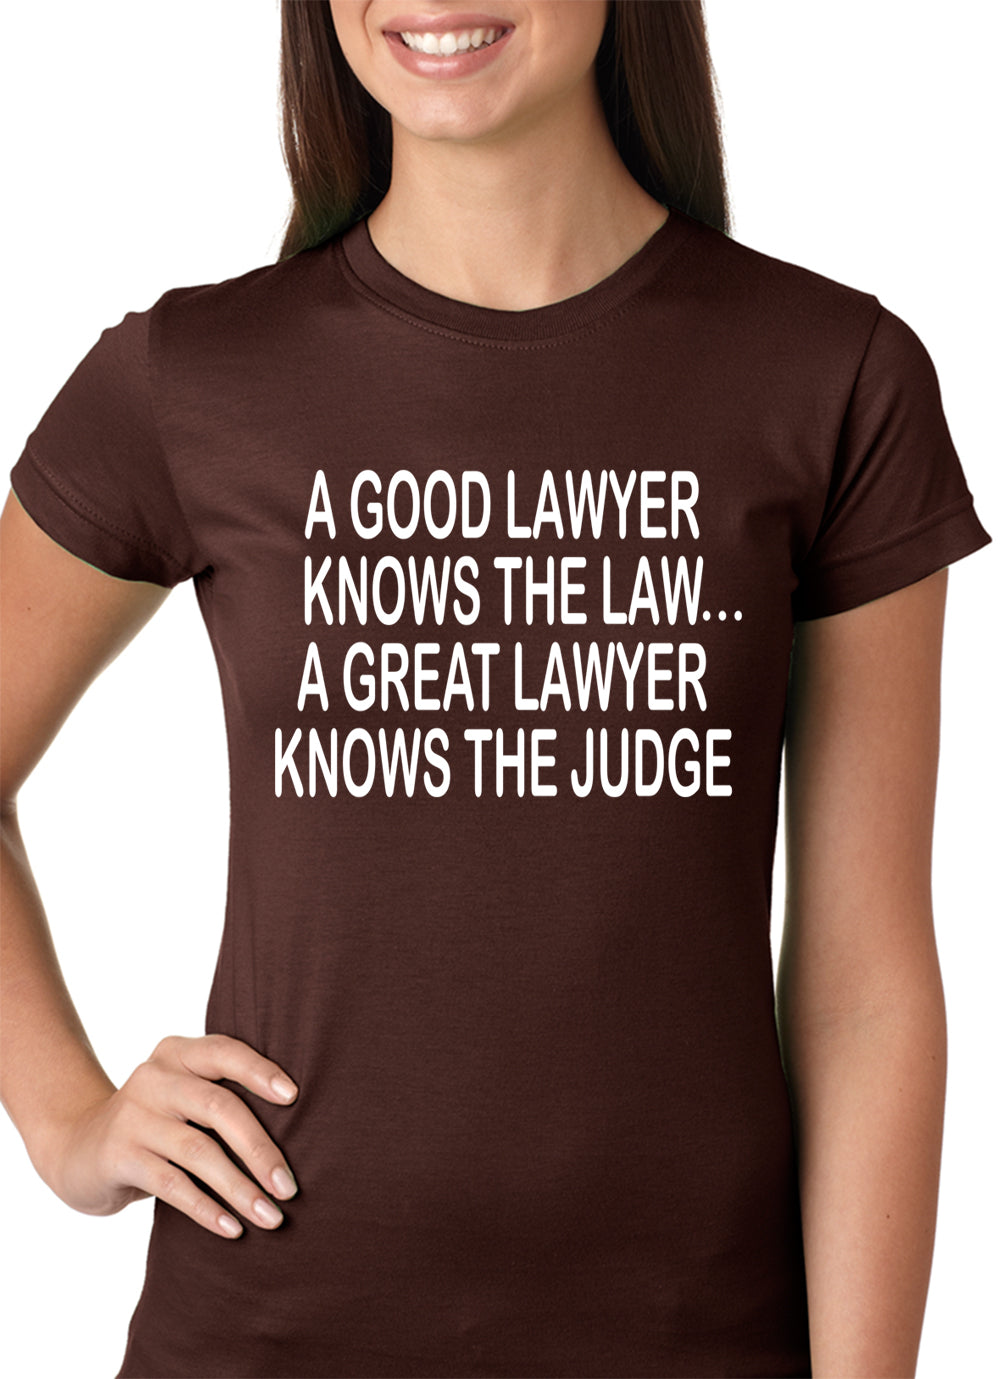 A Good Lawyer Girls T-shirt Brown